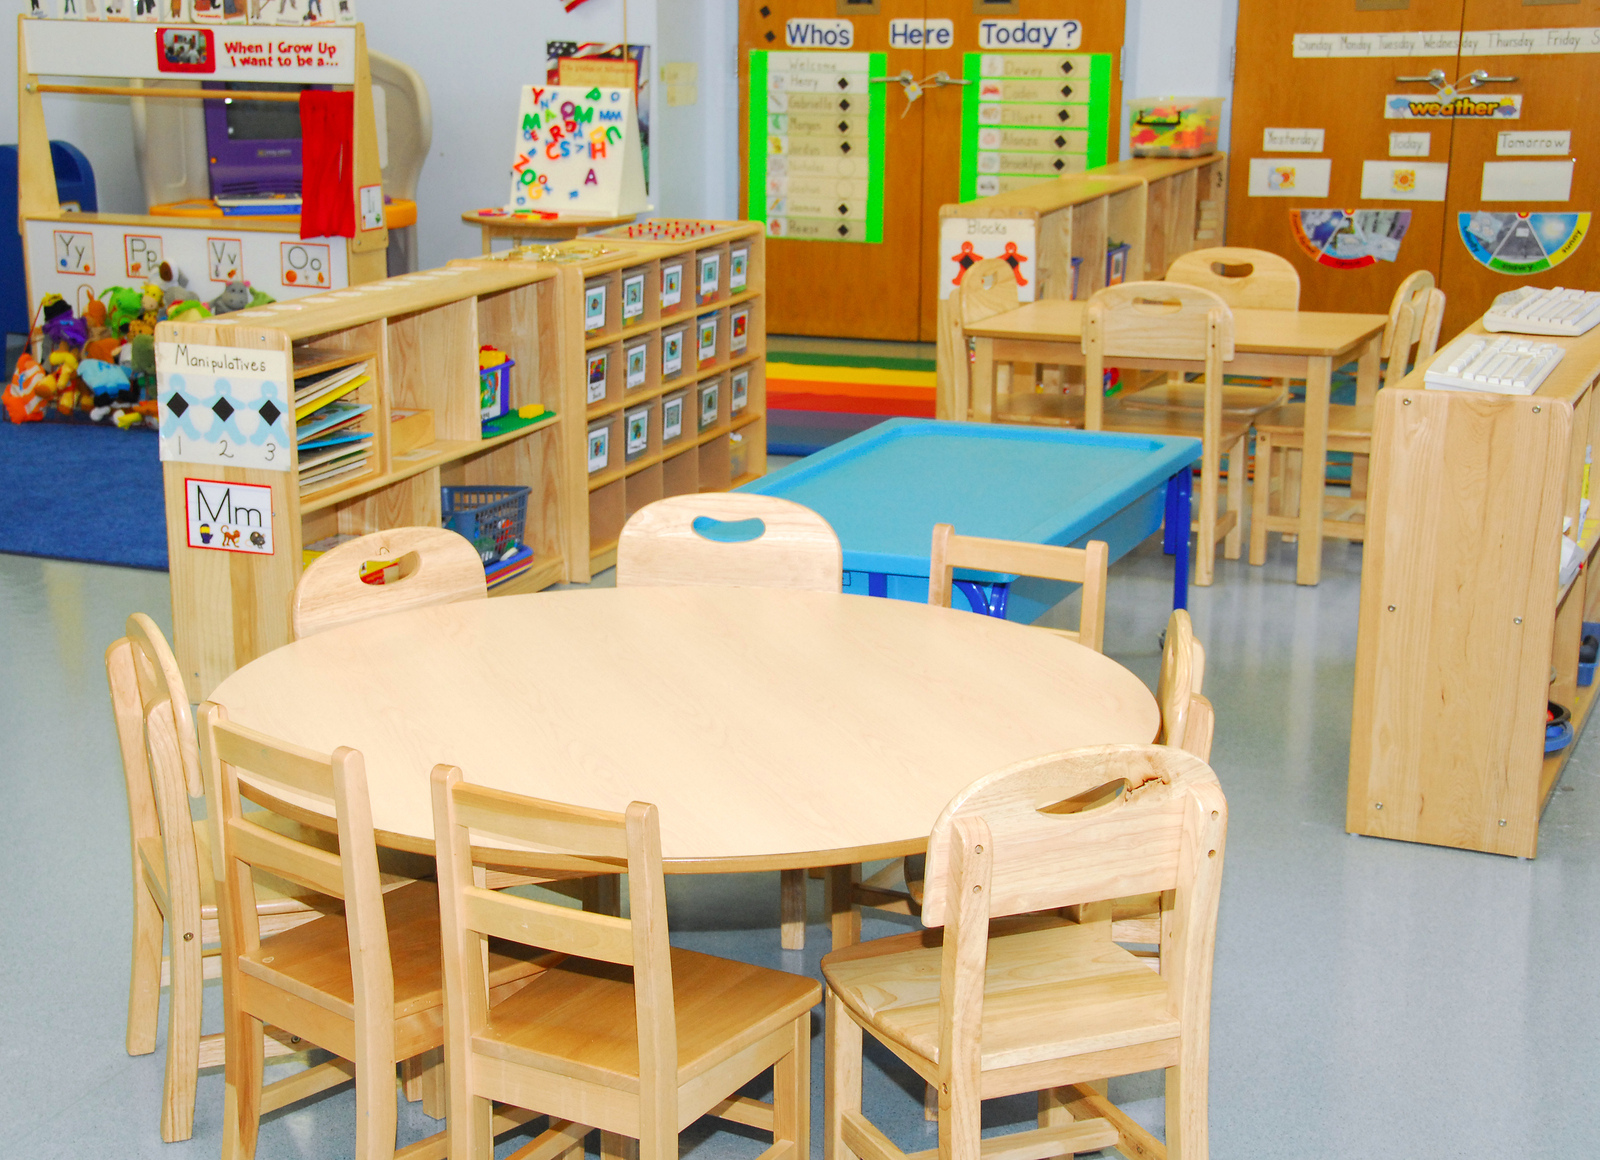 Pictures Of Classroom Furnitures ~ Classroom safety and cleanliness in preschool